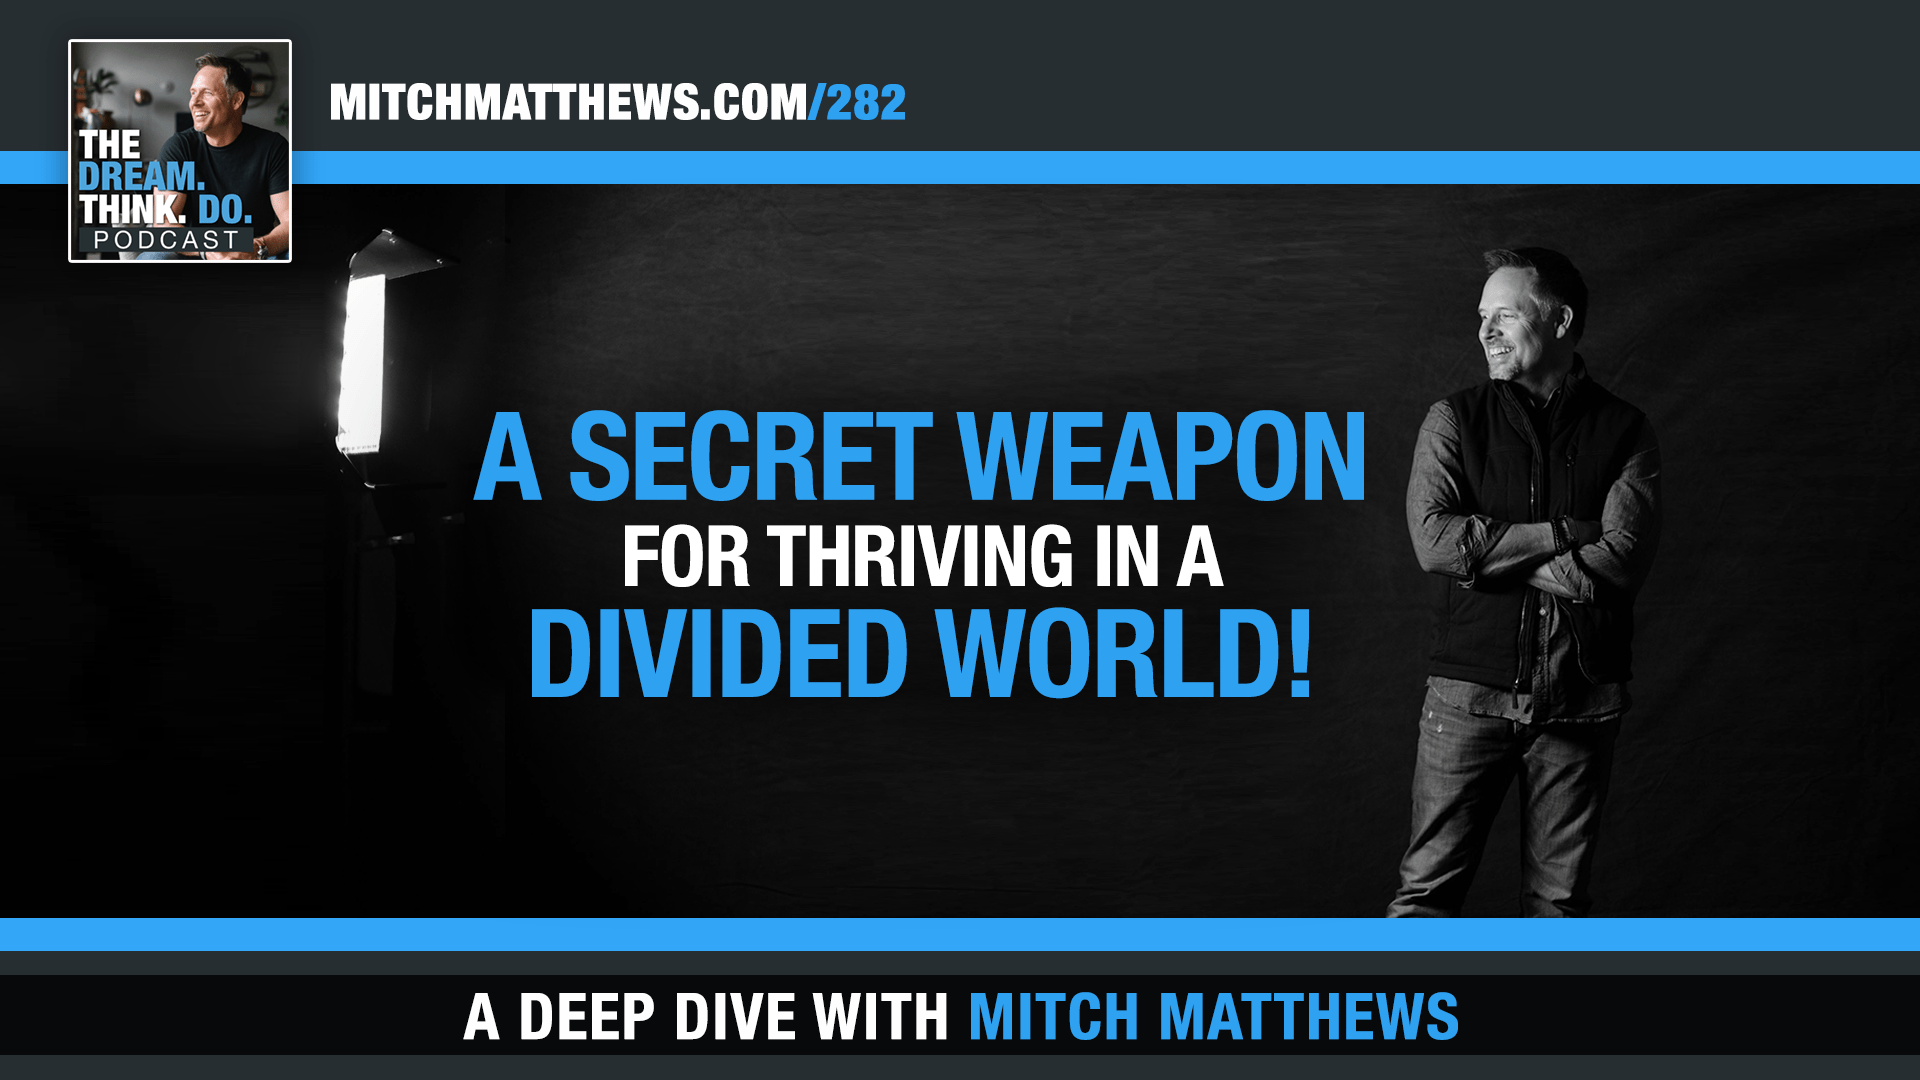 EMPATHY - The Secret Weapon for Thriving in a Divided World!